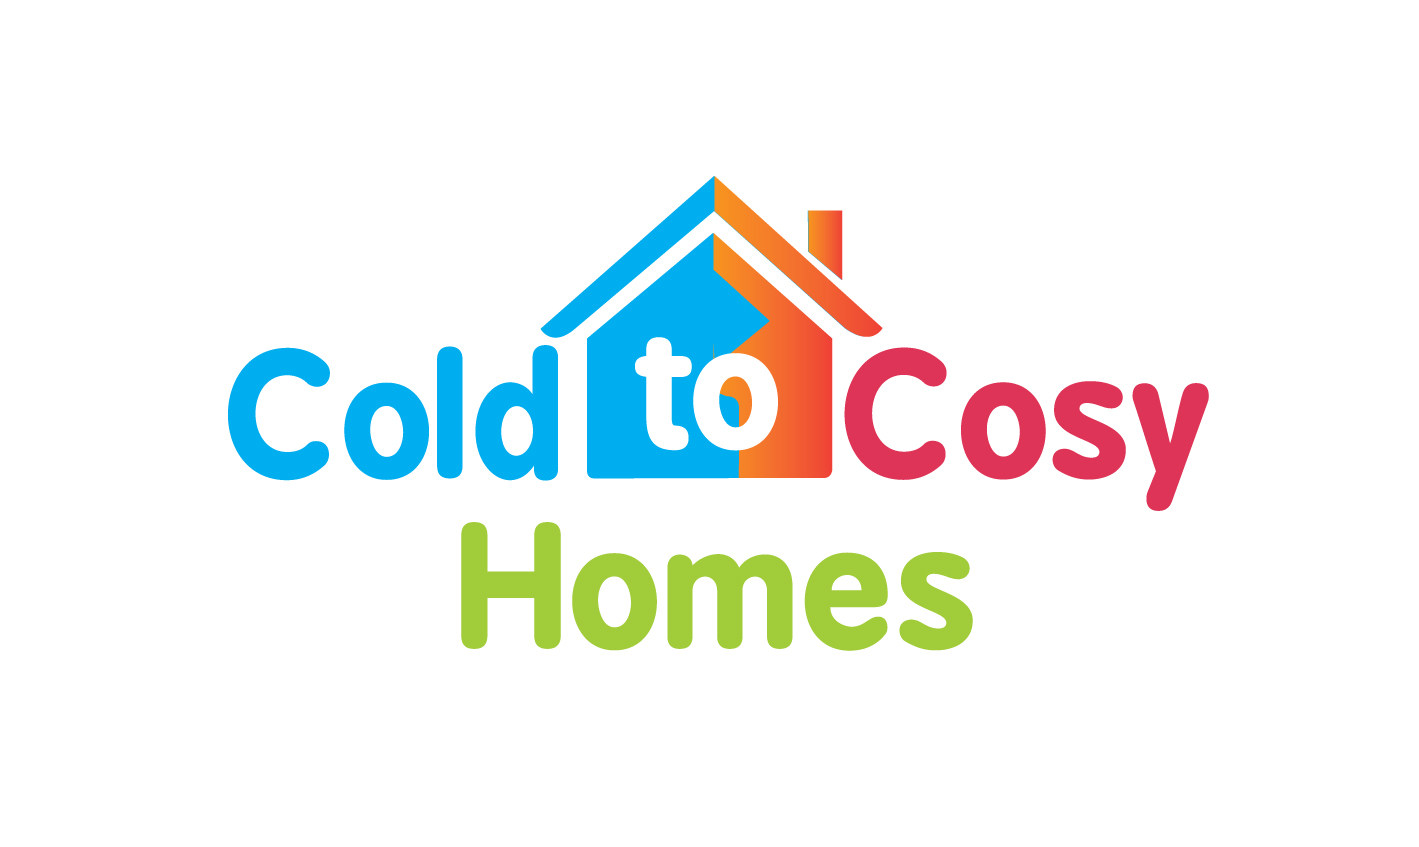 Cold to Cosy Homes logo